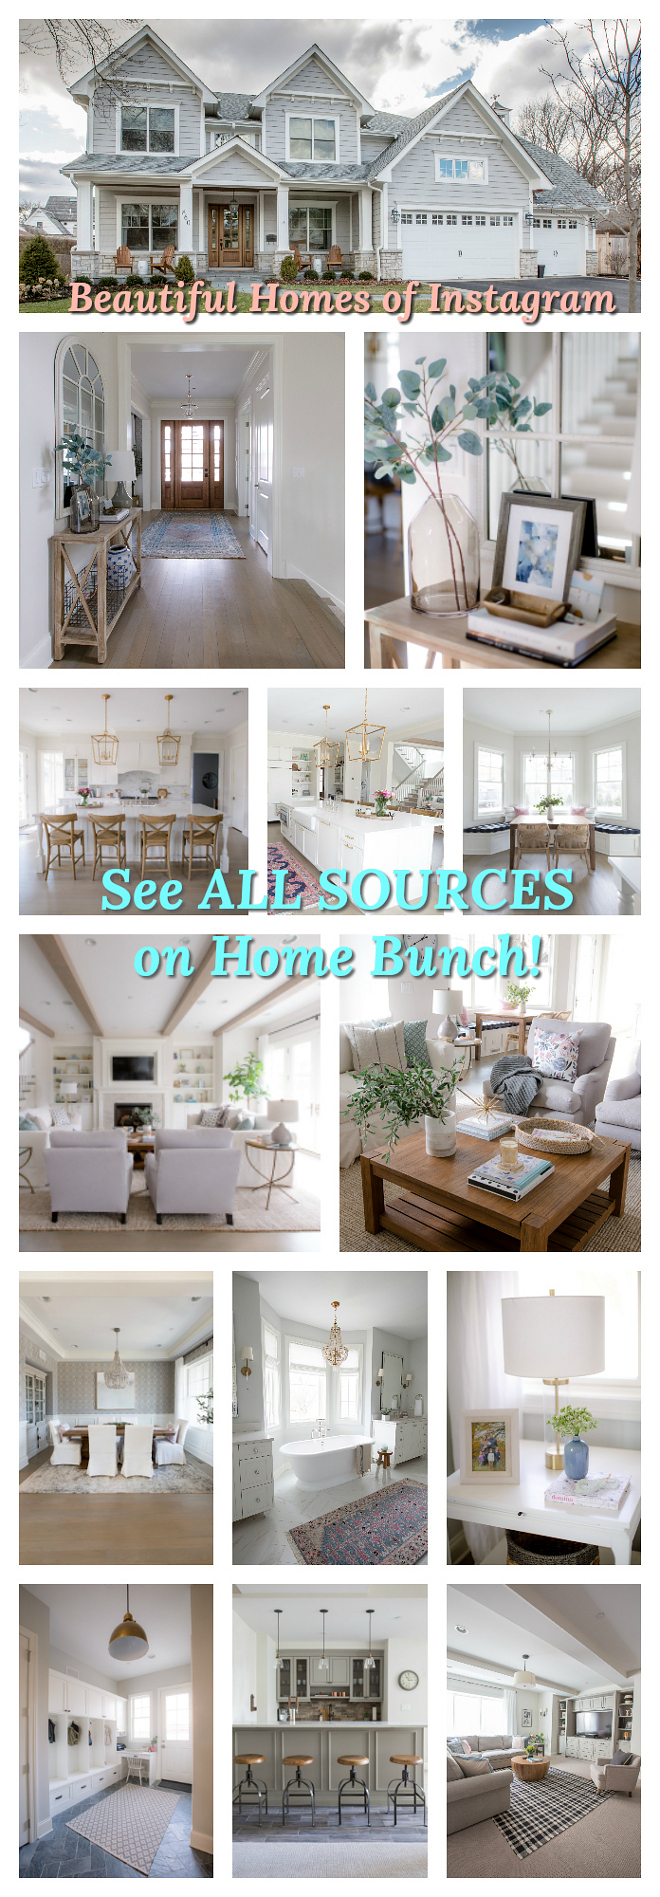 Home Bunch Most Popular Blog Series Beautiful Homes of Instagram